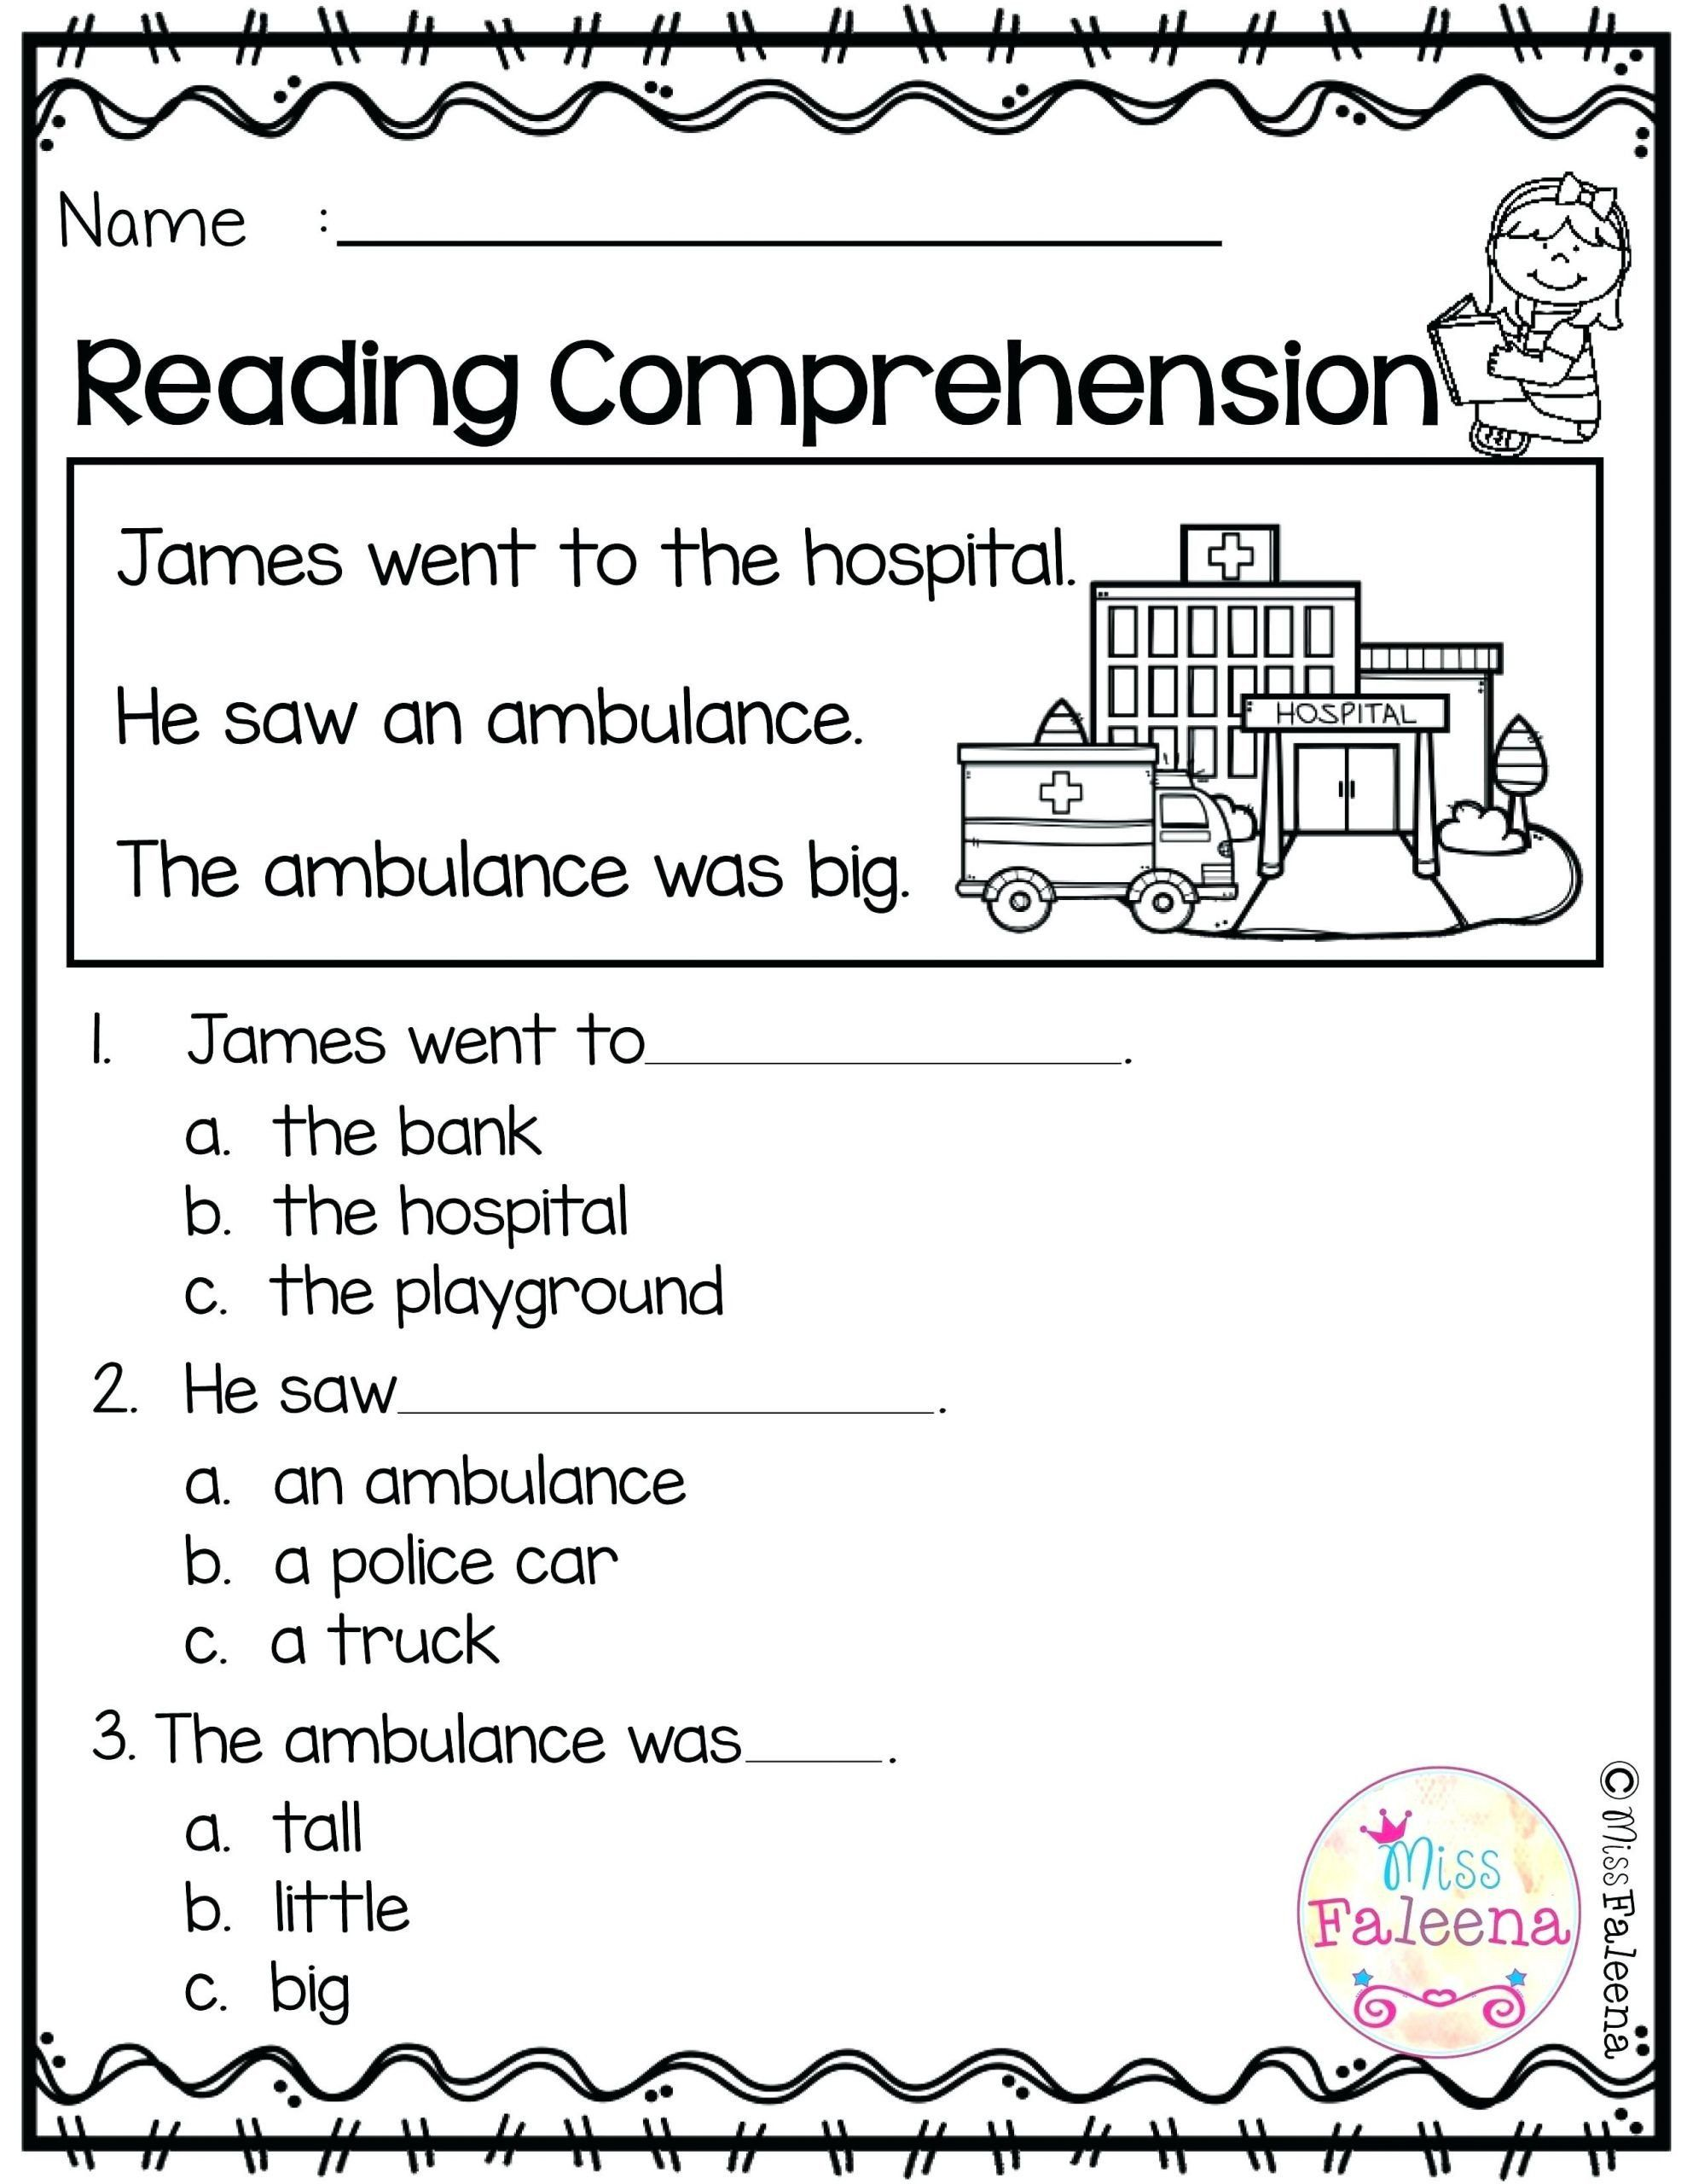 Kindergarten Reading Comprehension Worksheets 8